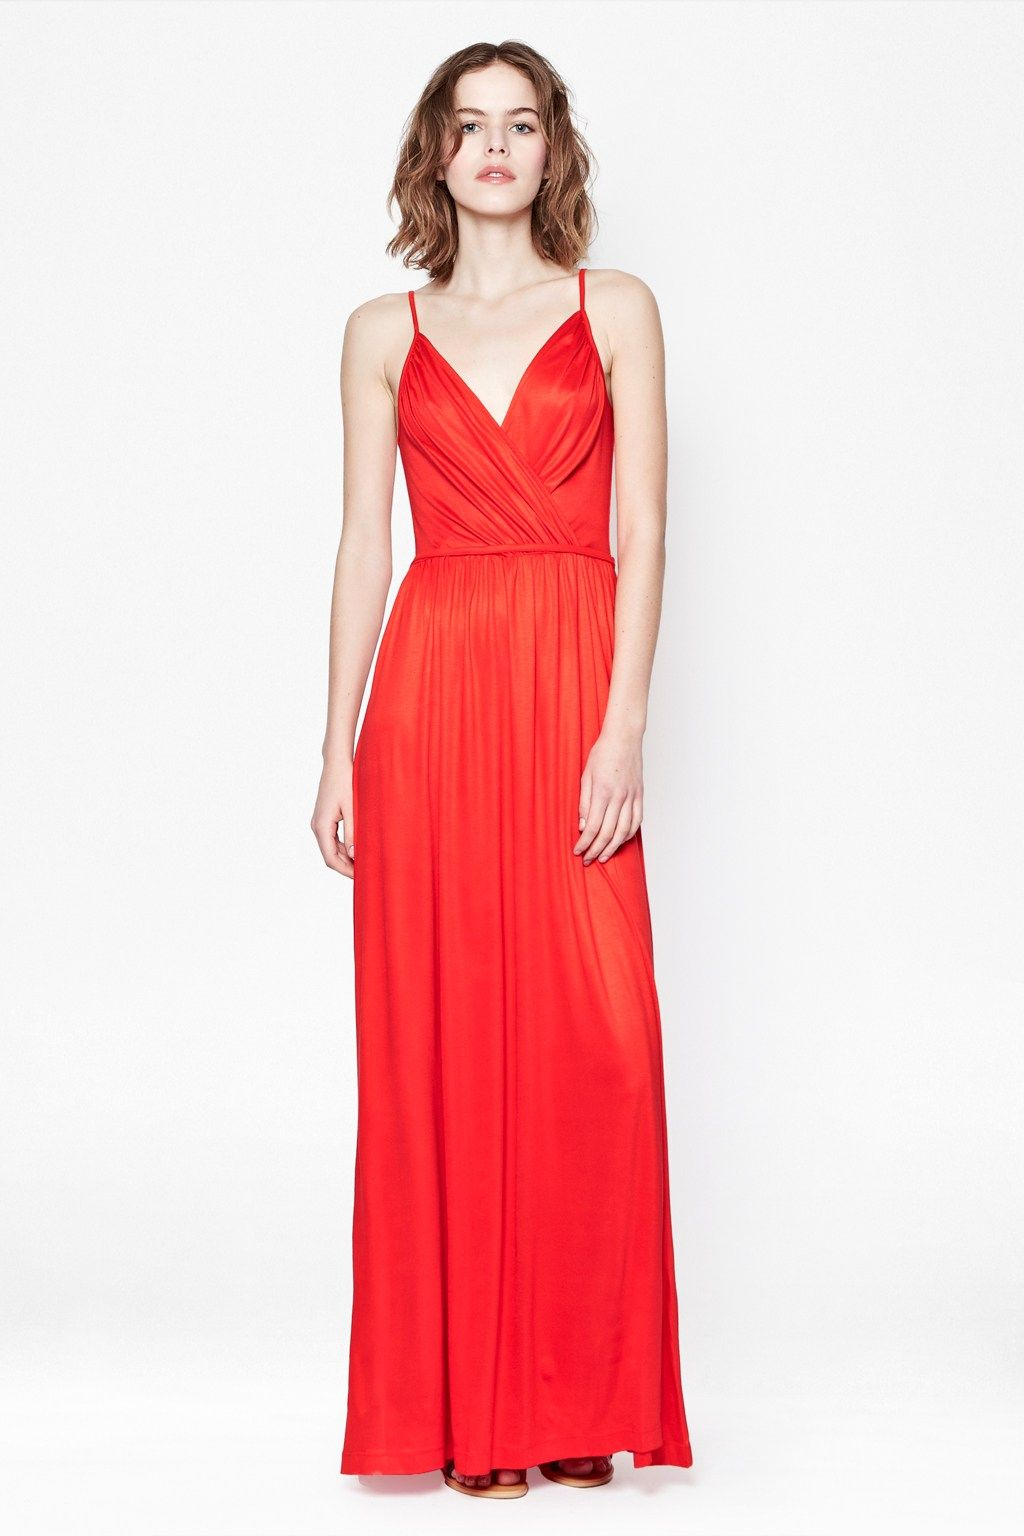 Maximize your wardrobe with colorful maxi dresses!